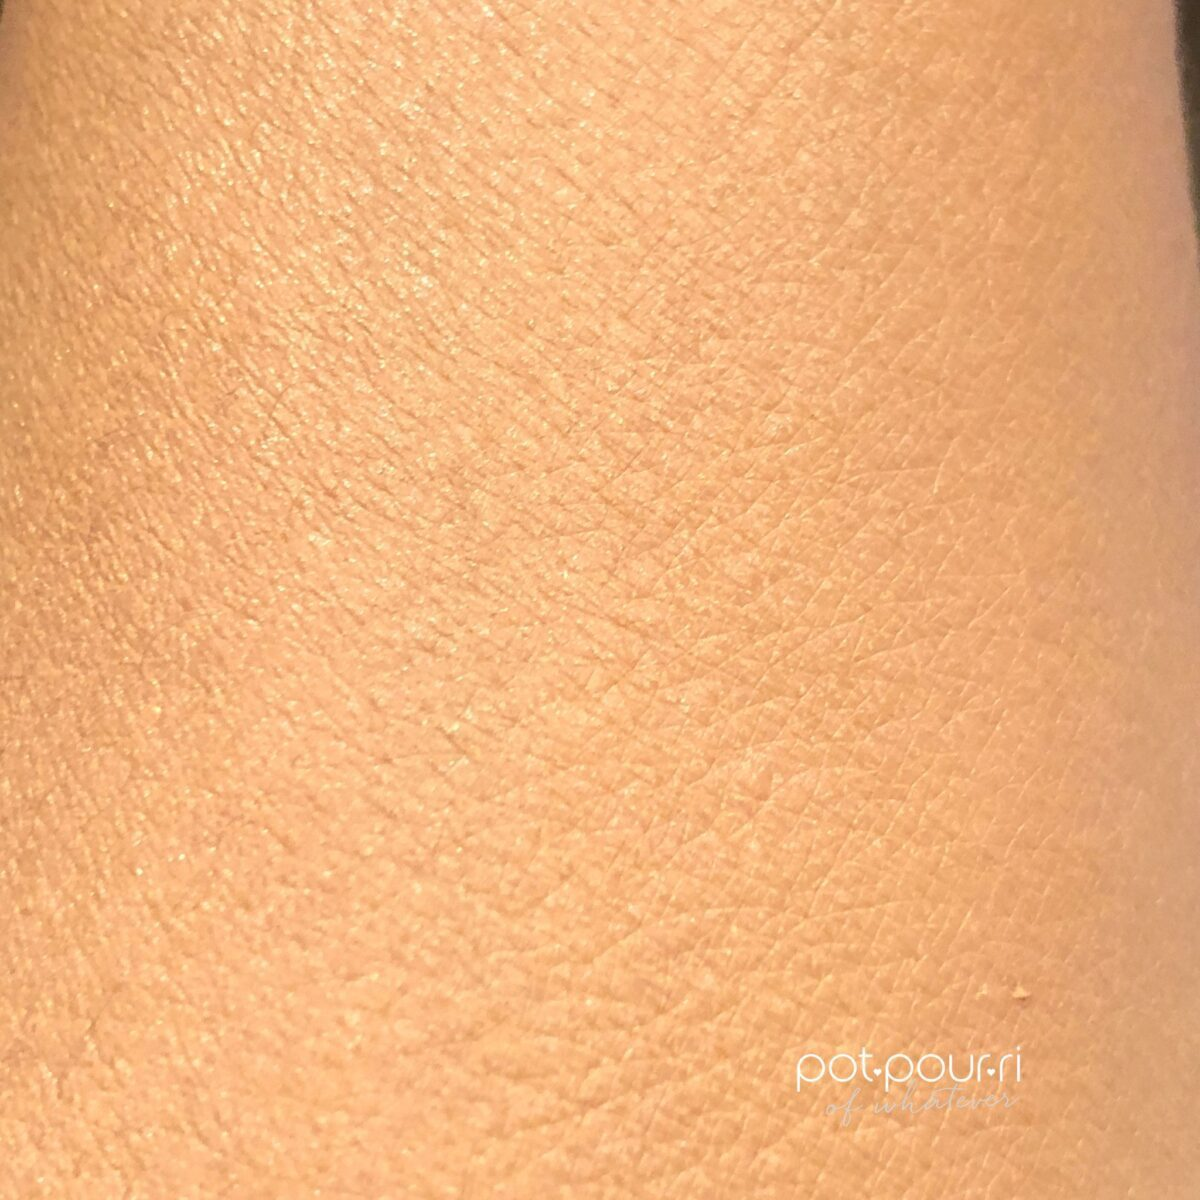 THE SWATCH 45N RUBBED INTO THE SKIN LOOKS LIKE A SECOND SKIN